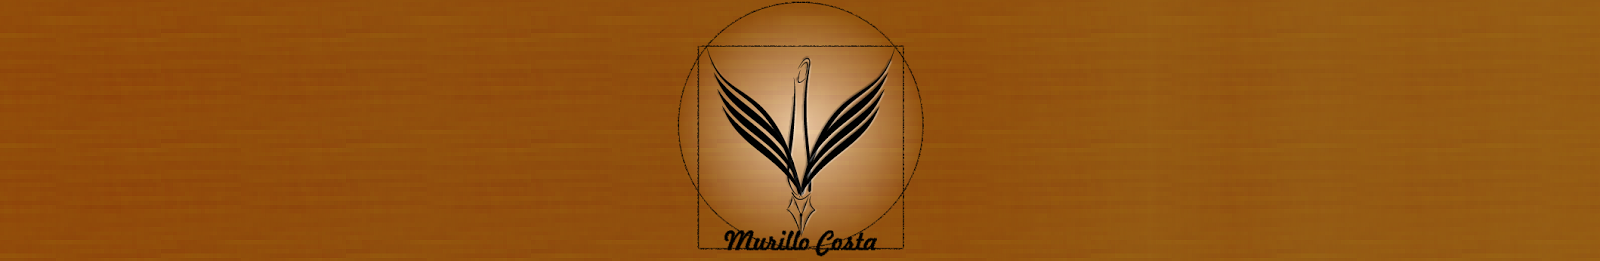 Murillo Costa